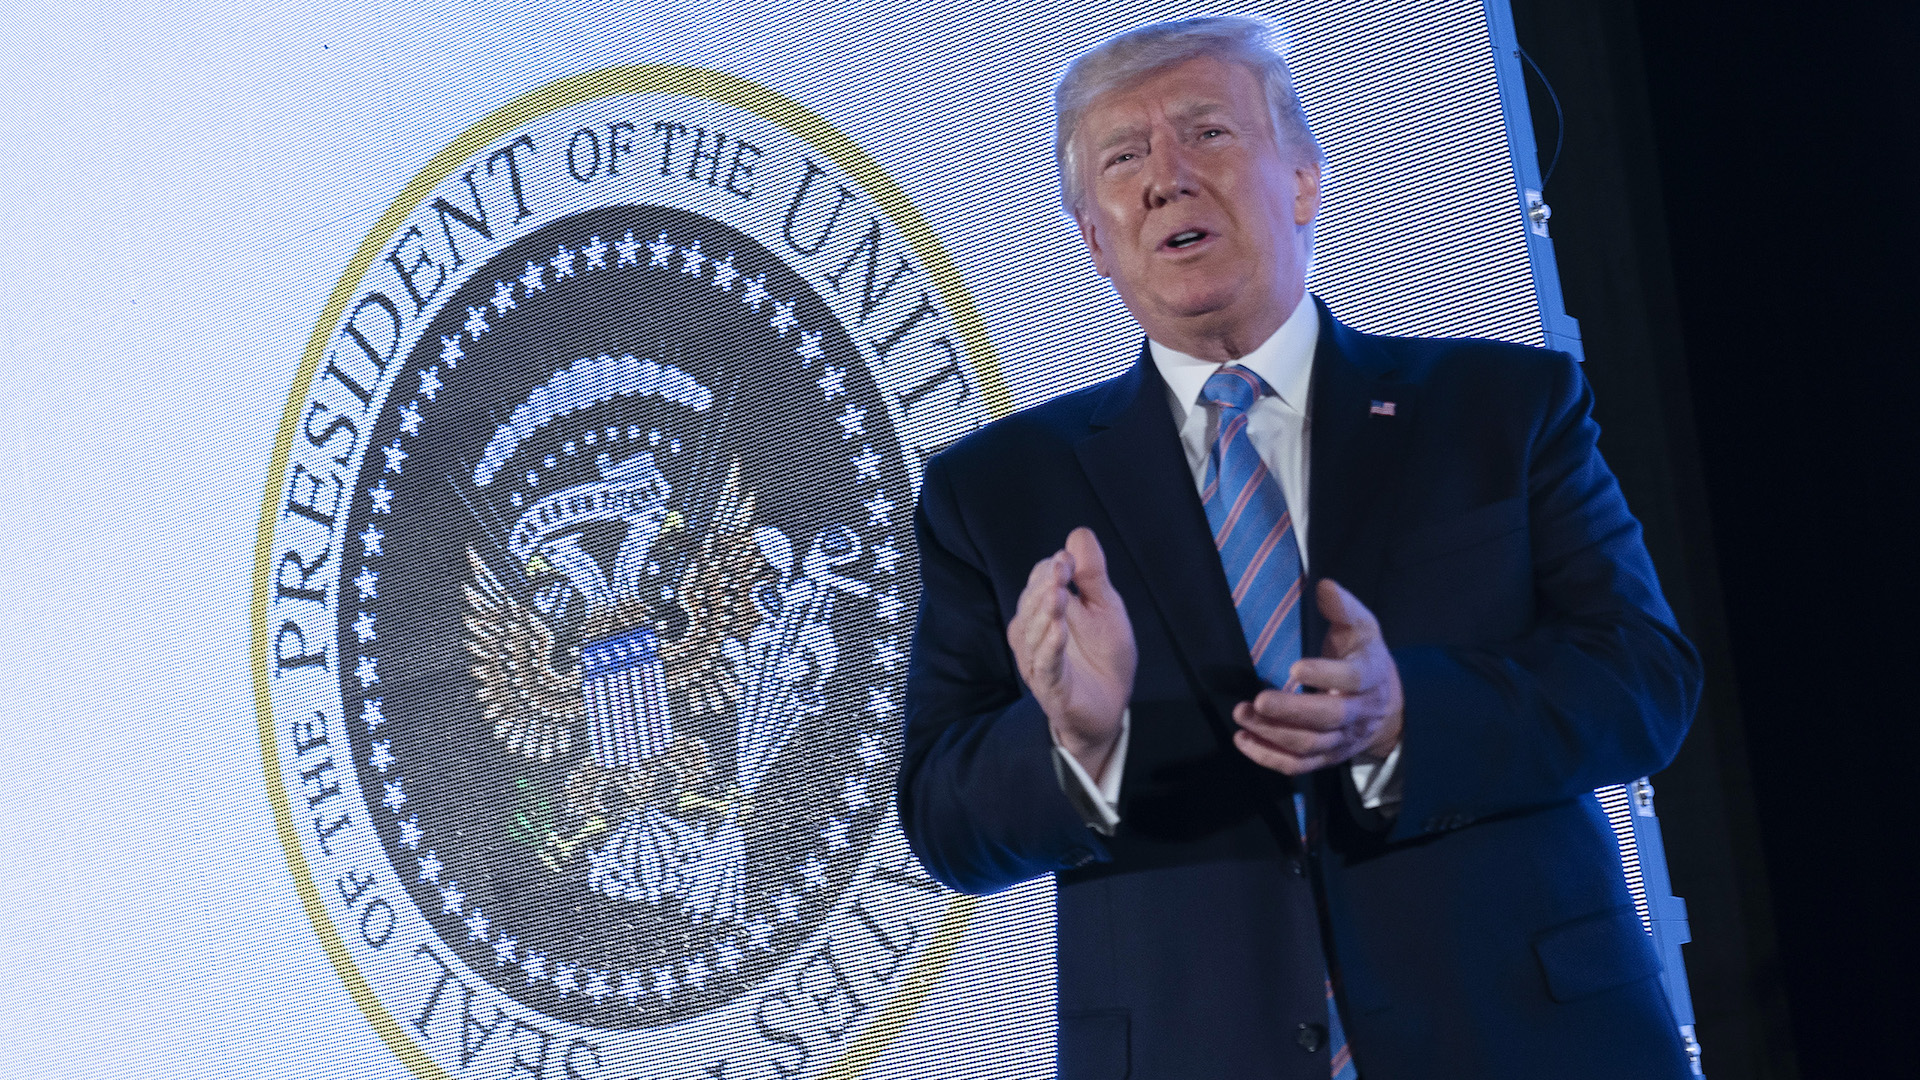 Meet the man who created the fake presidential seal — a former Republican fed up with Trump